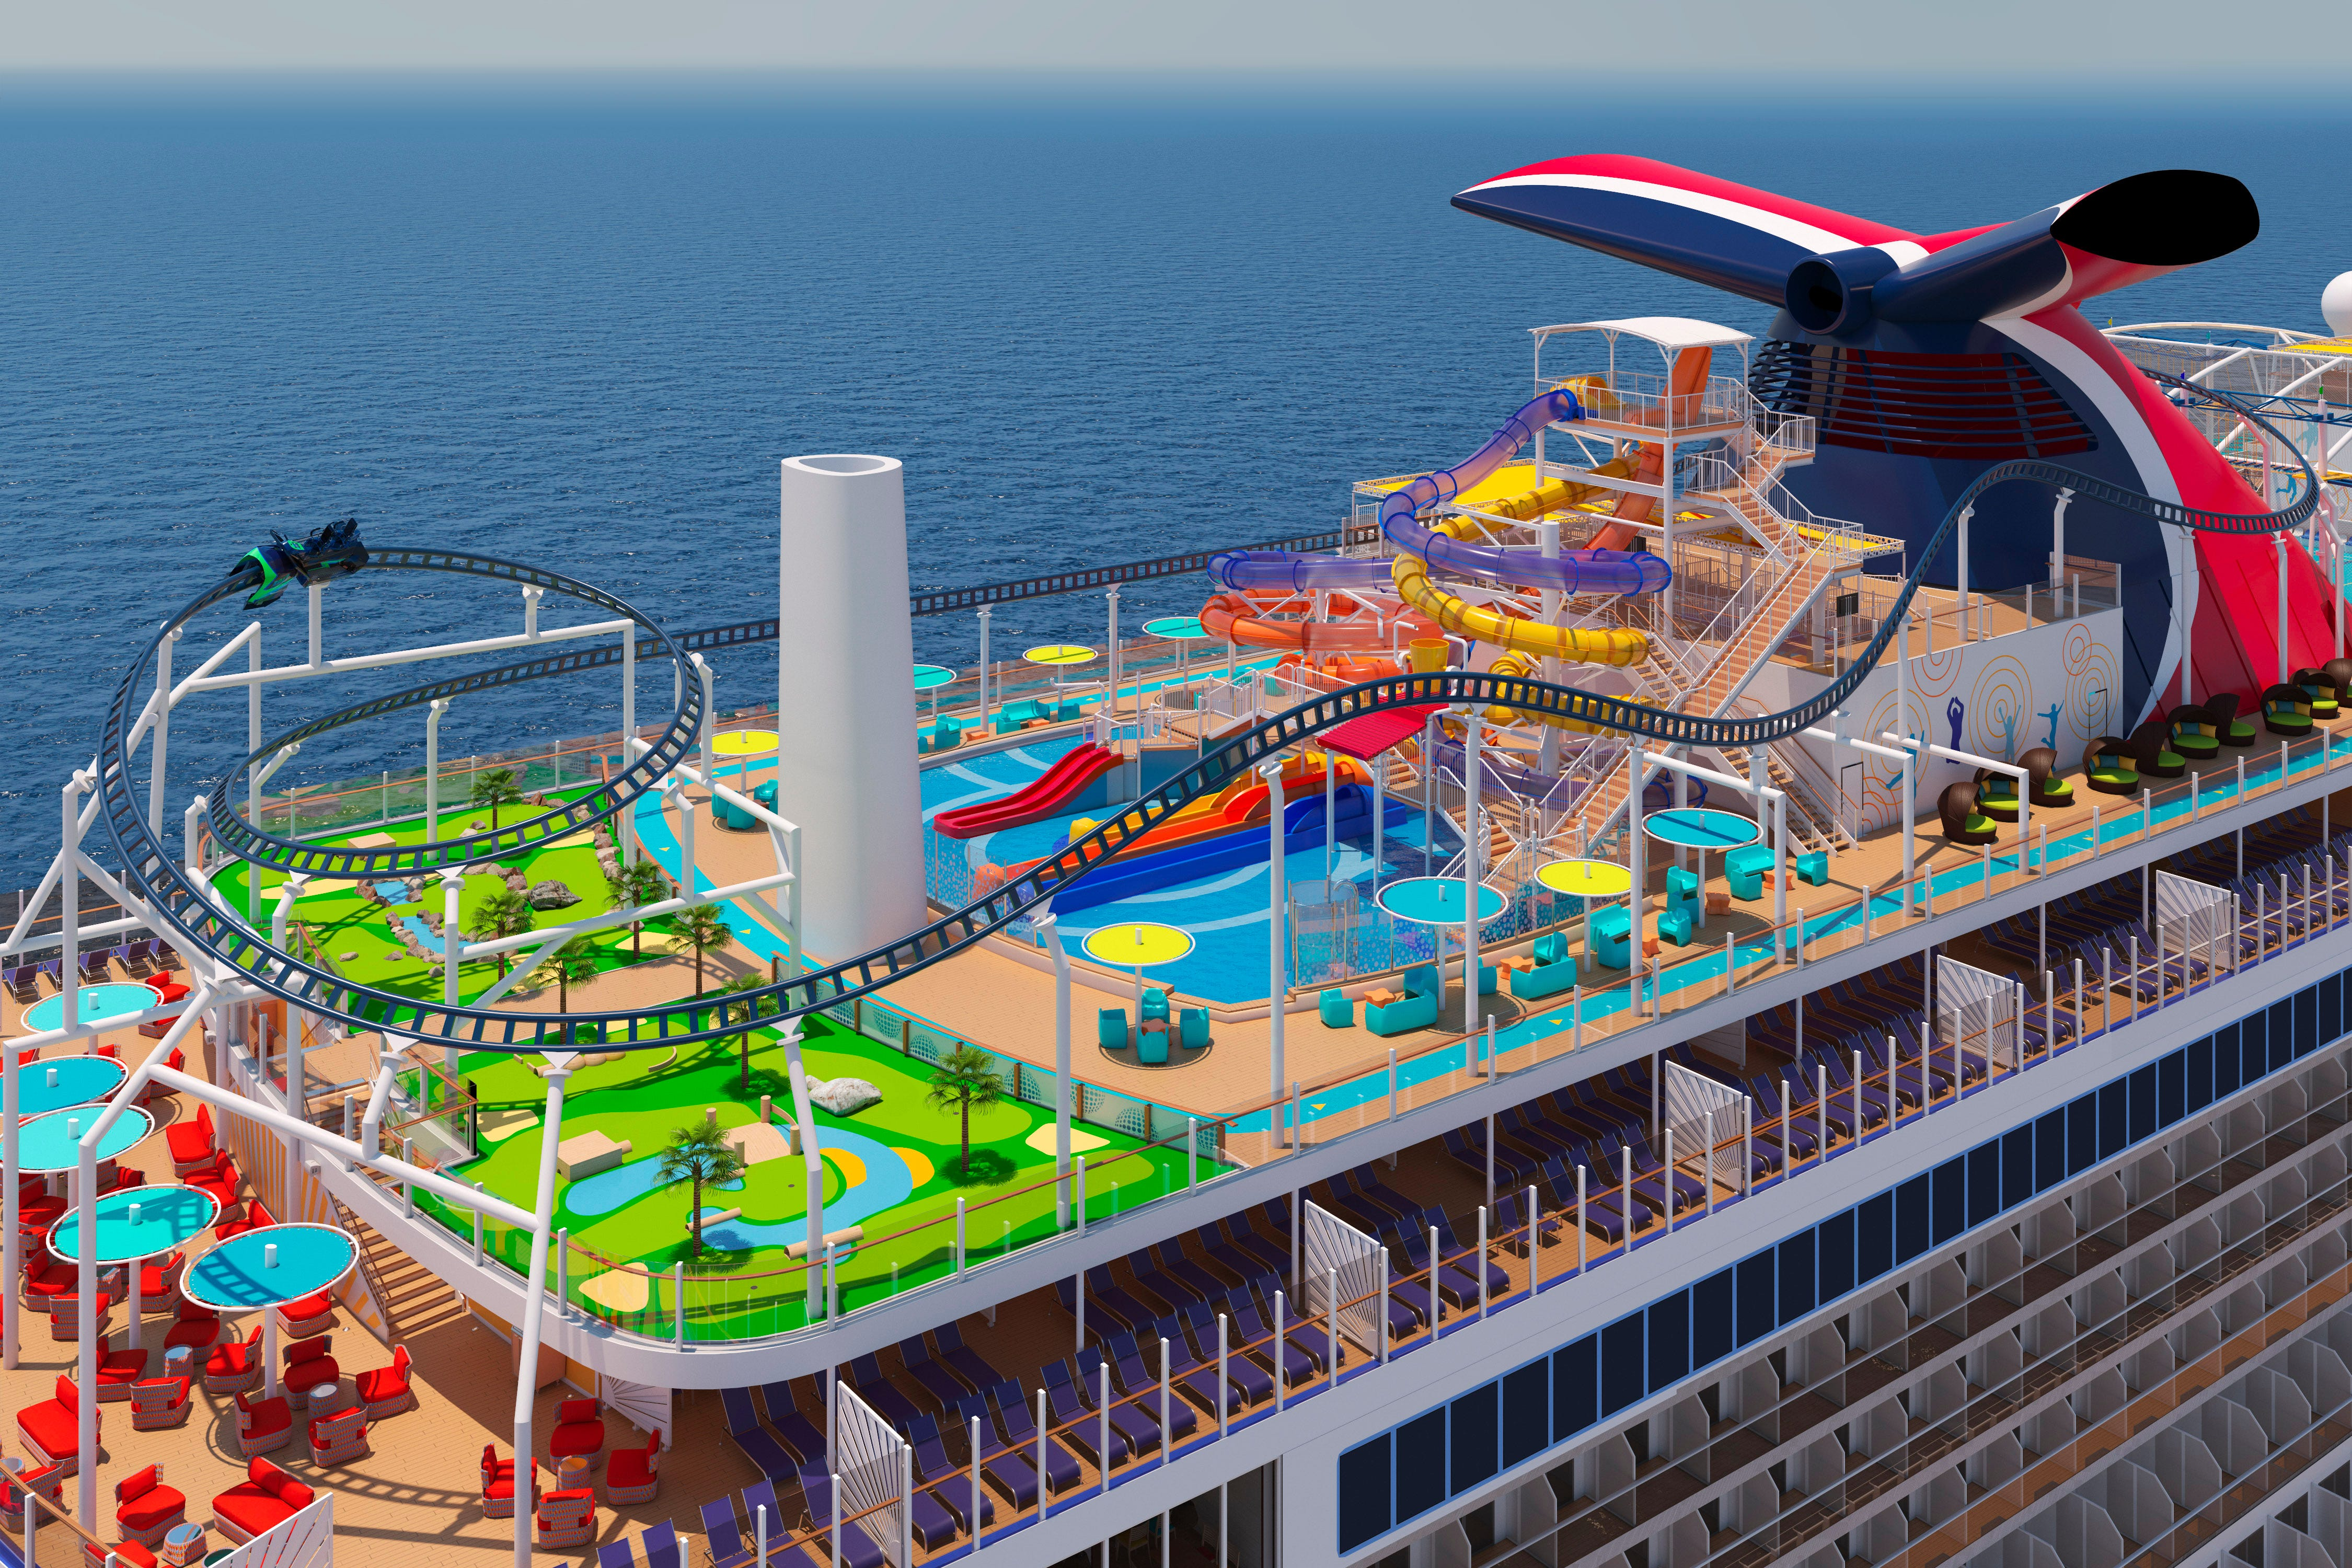 These cruise ships are set to debut in 2021